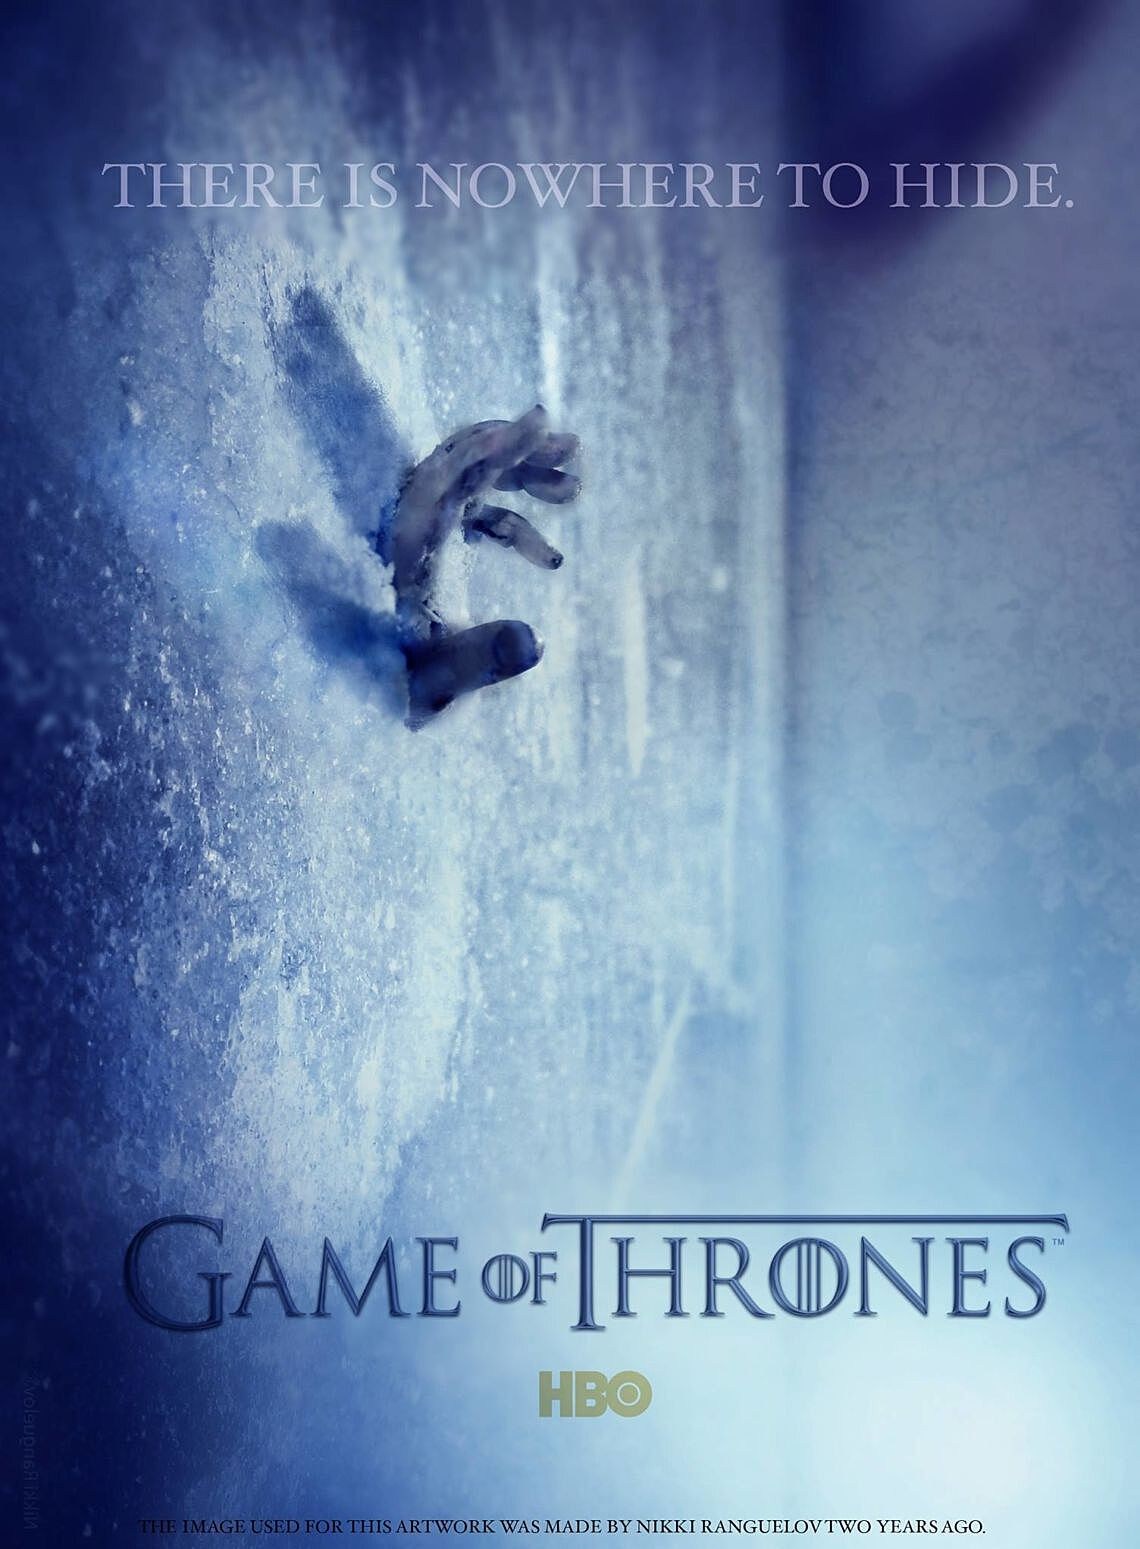 Hbo S Official Poster For Game Of Thrones Season 7 Vs Fan Made Ones